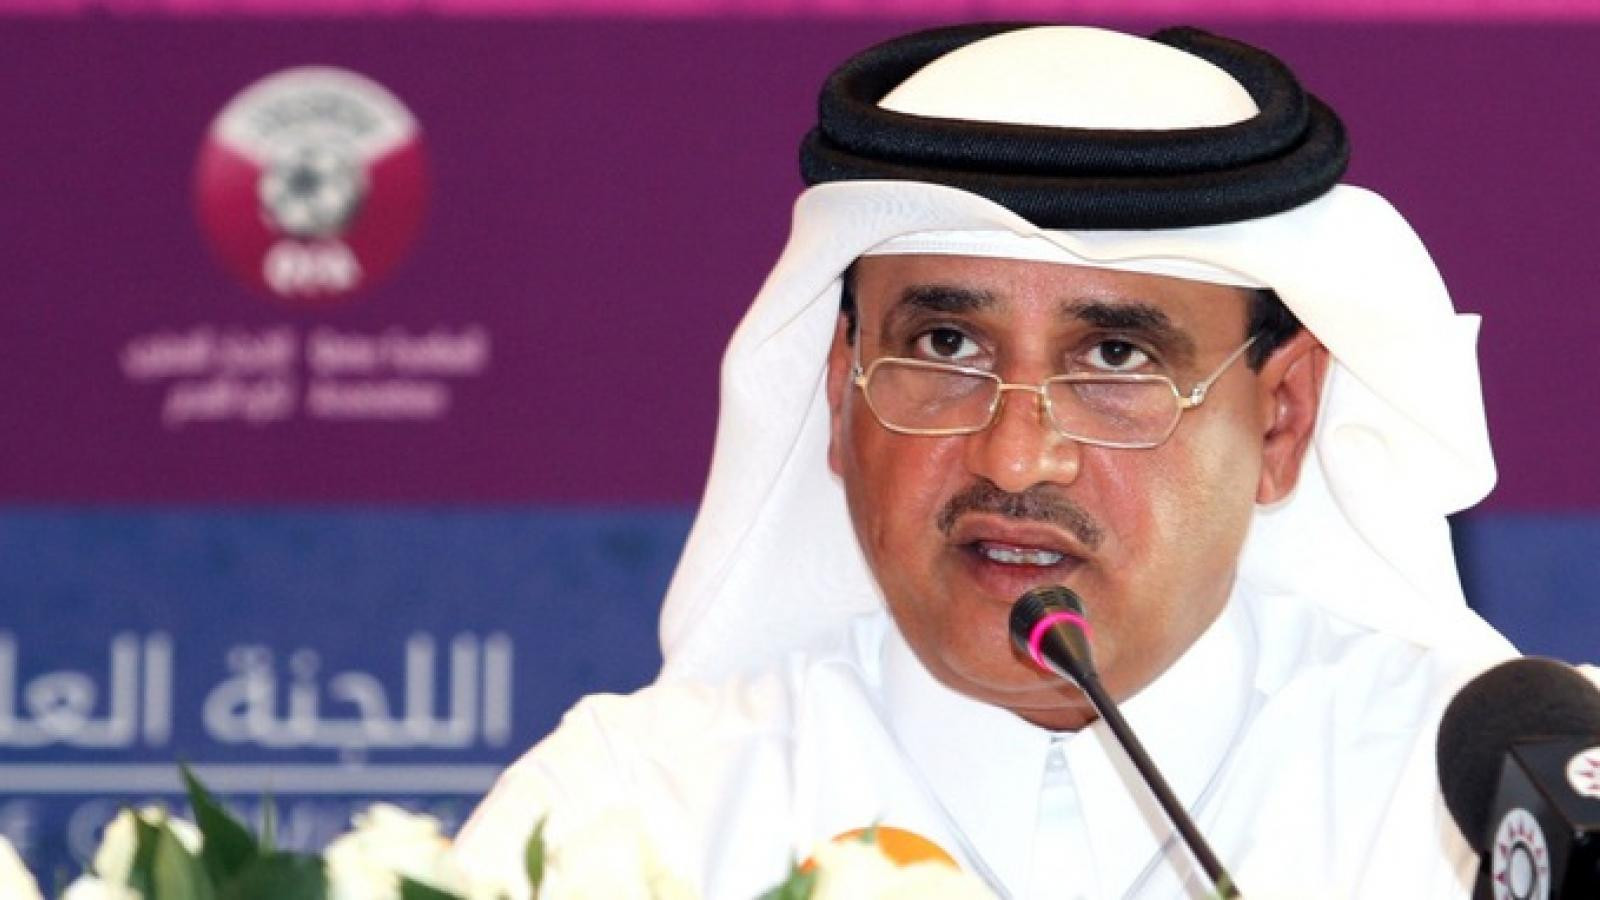 Qatar's Saoud Al Mohannadi has officially withdrawn as a candidate for President of the Asian Football Confederation after Sheikh Salman let it be publicly known that 40 out of 47 countries backed him ©Getty Images